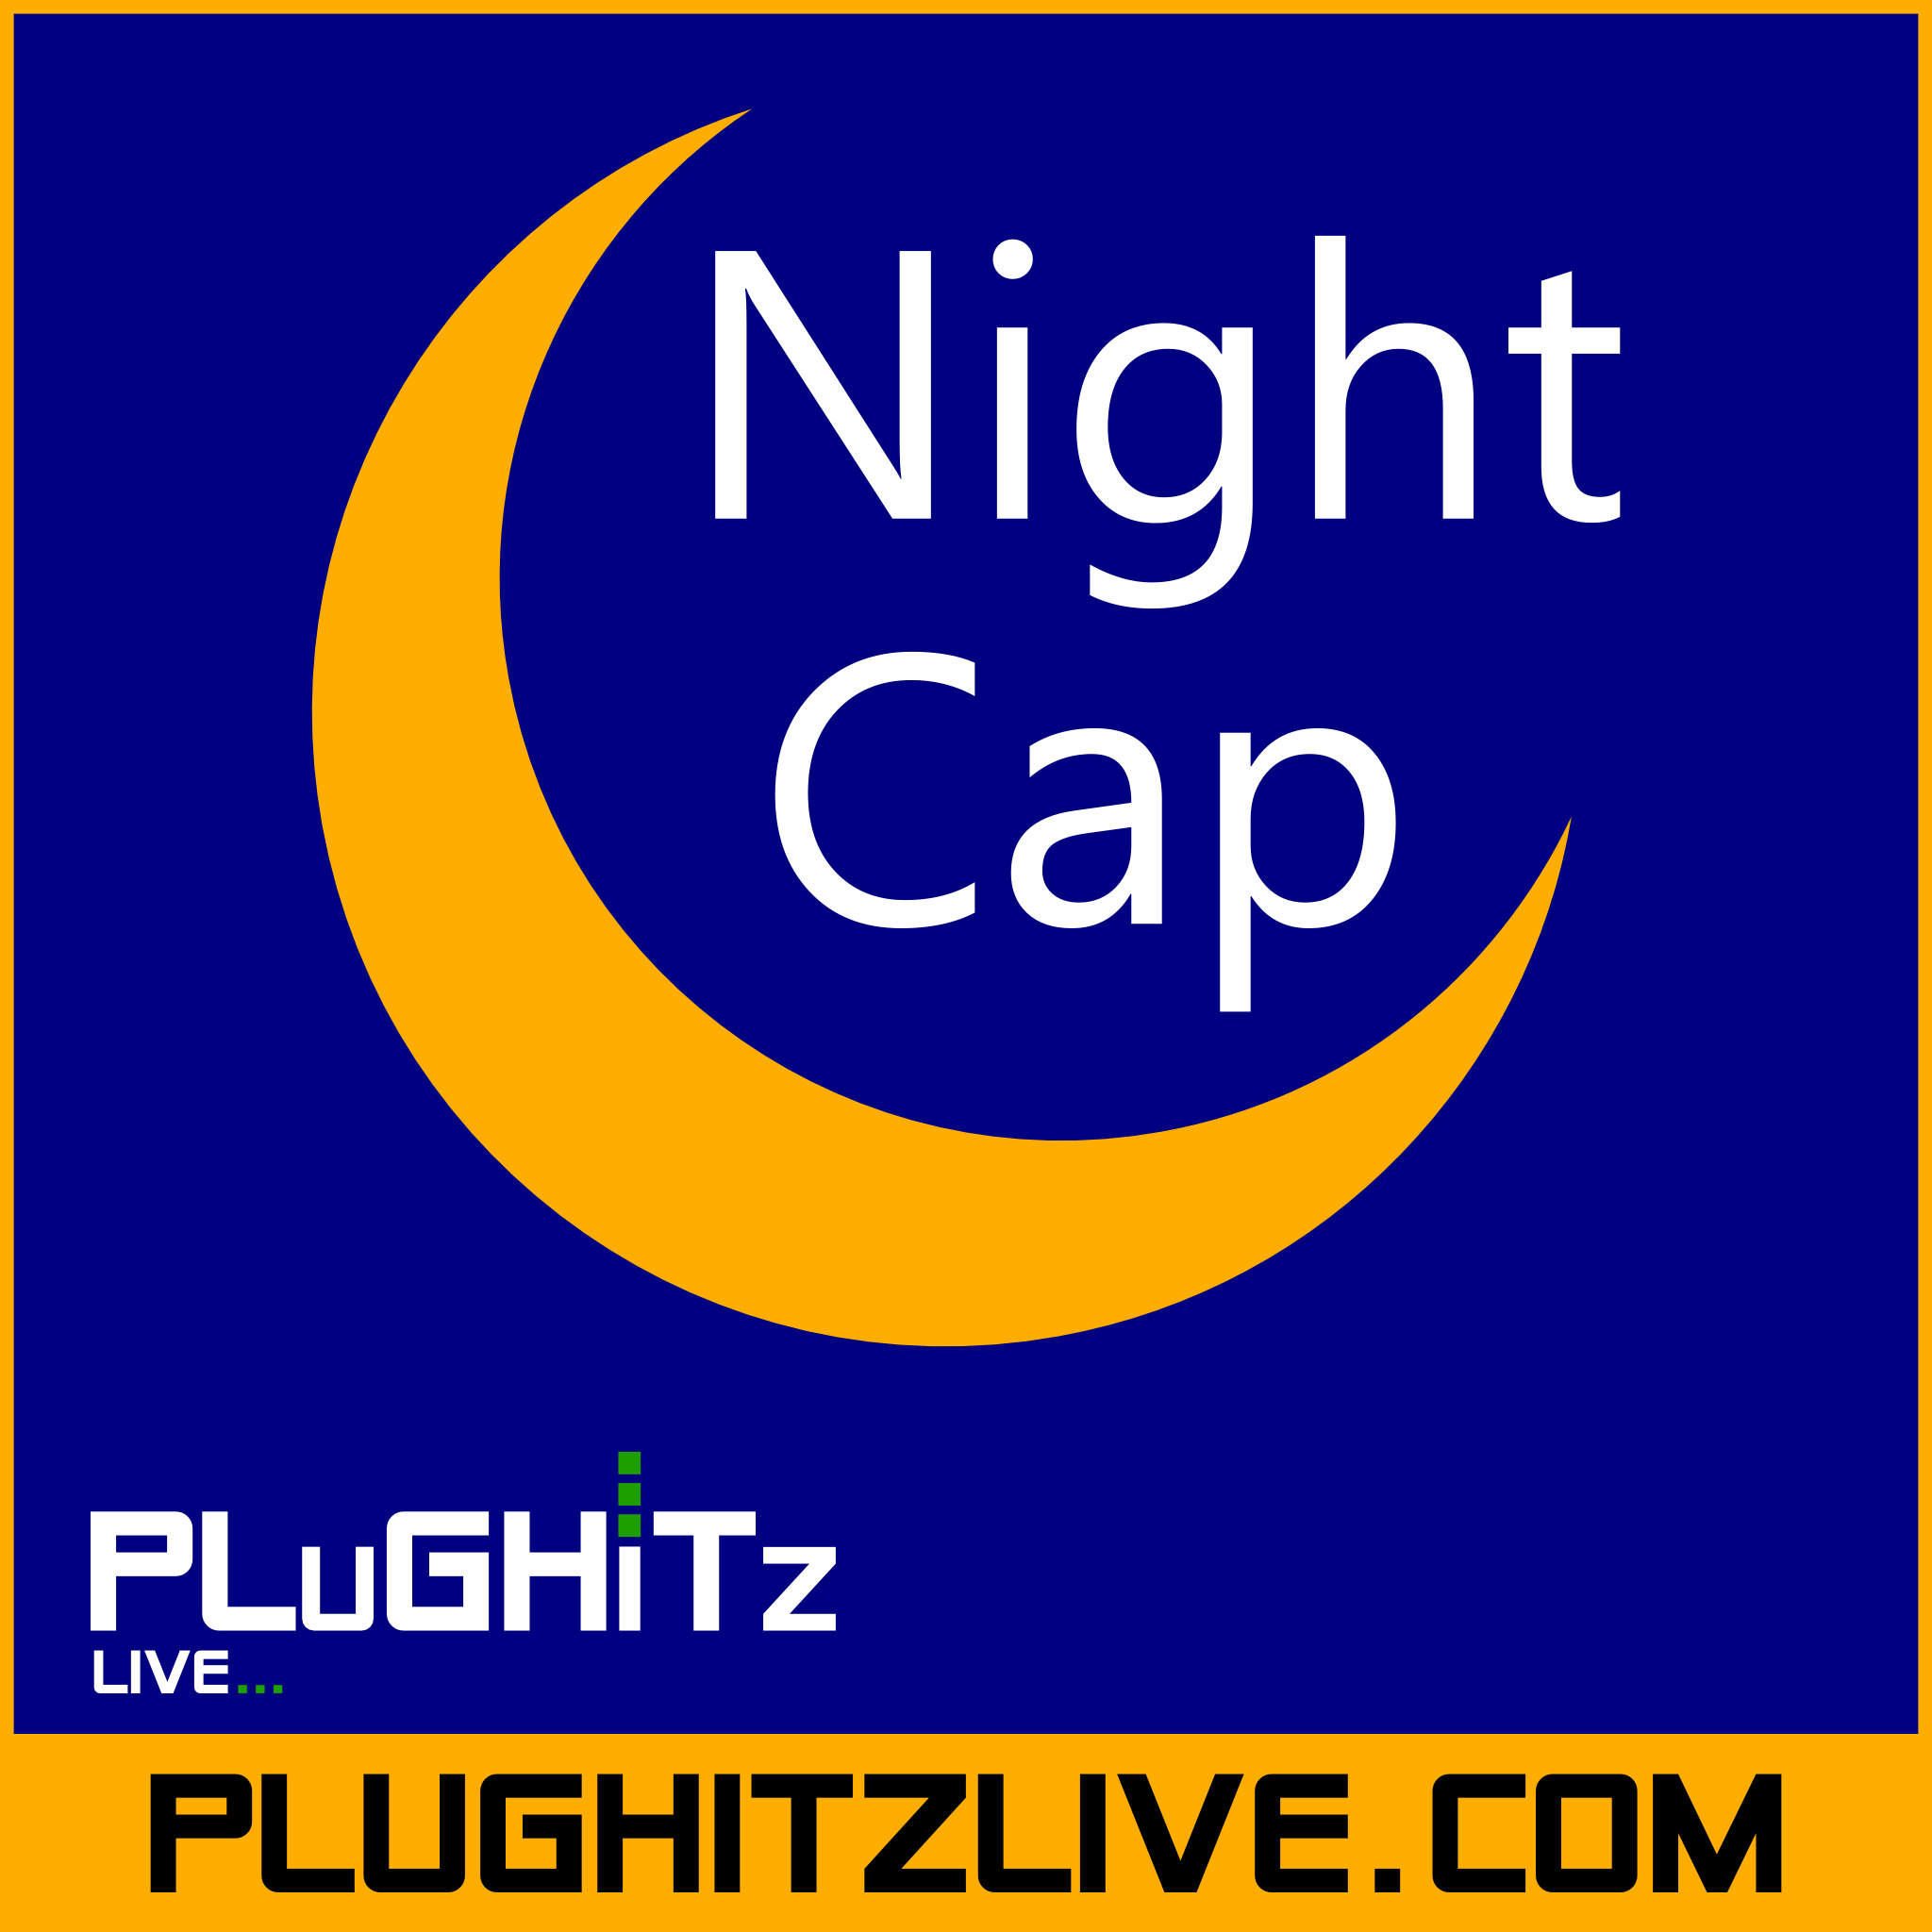 PLuGHiTz Live Night Cap (Video)